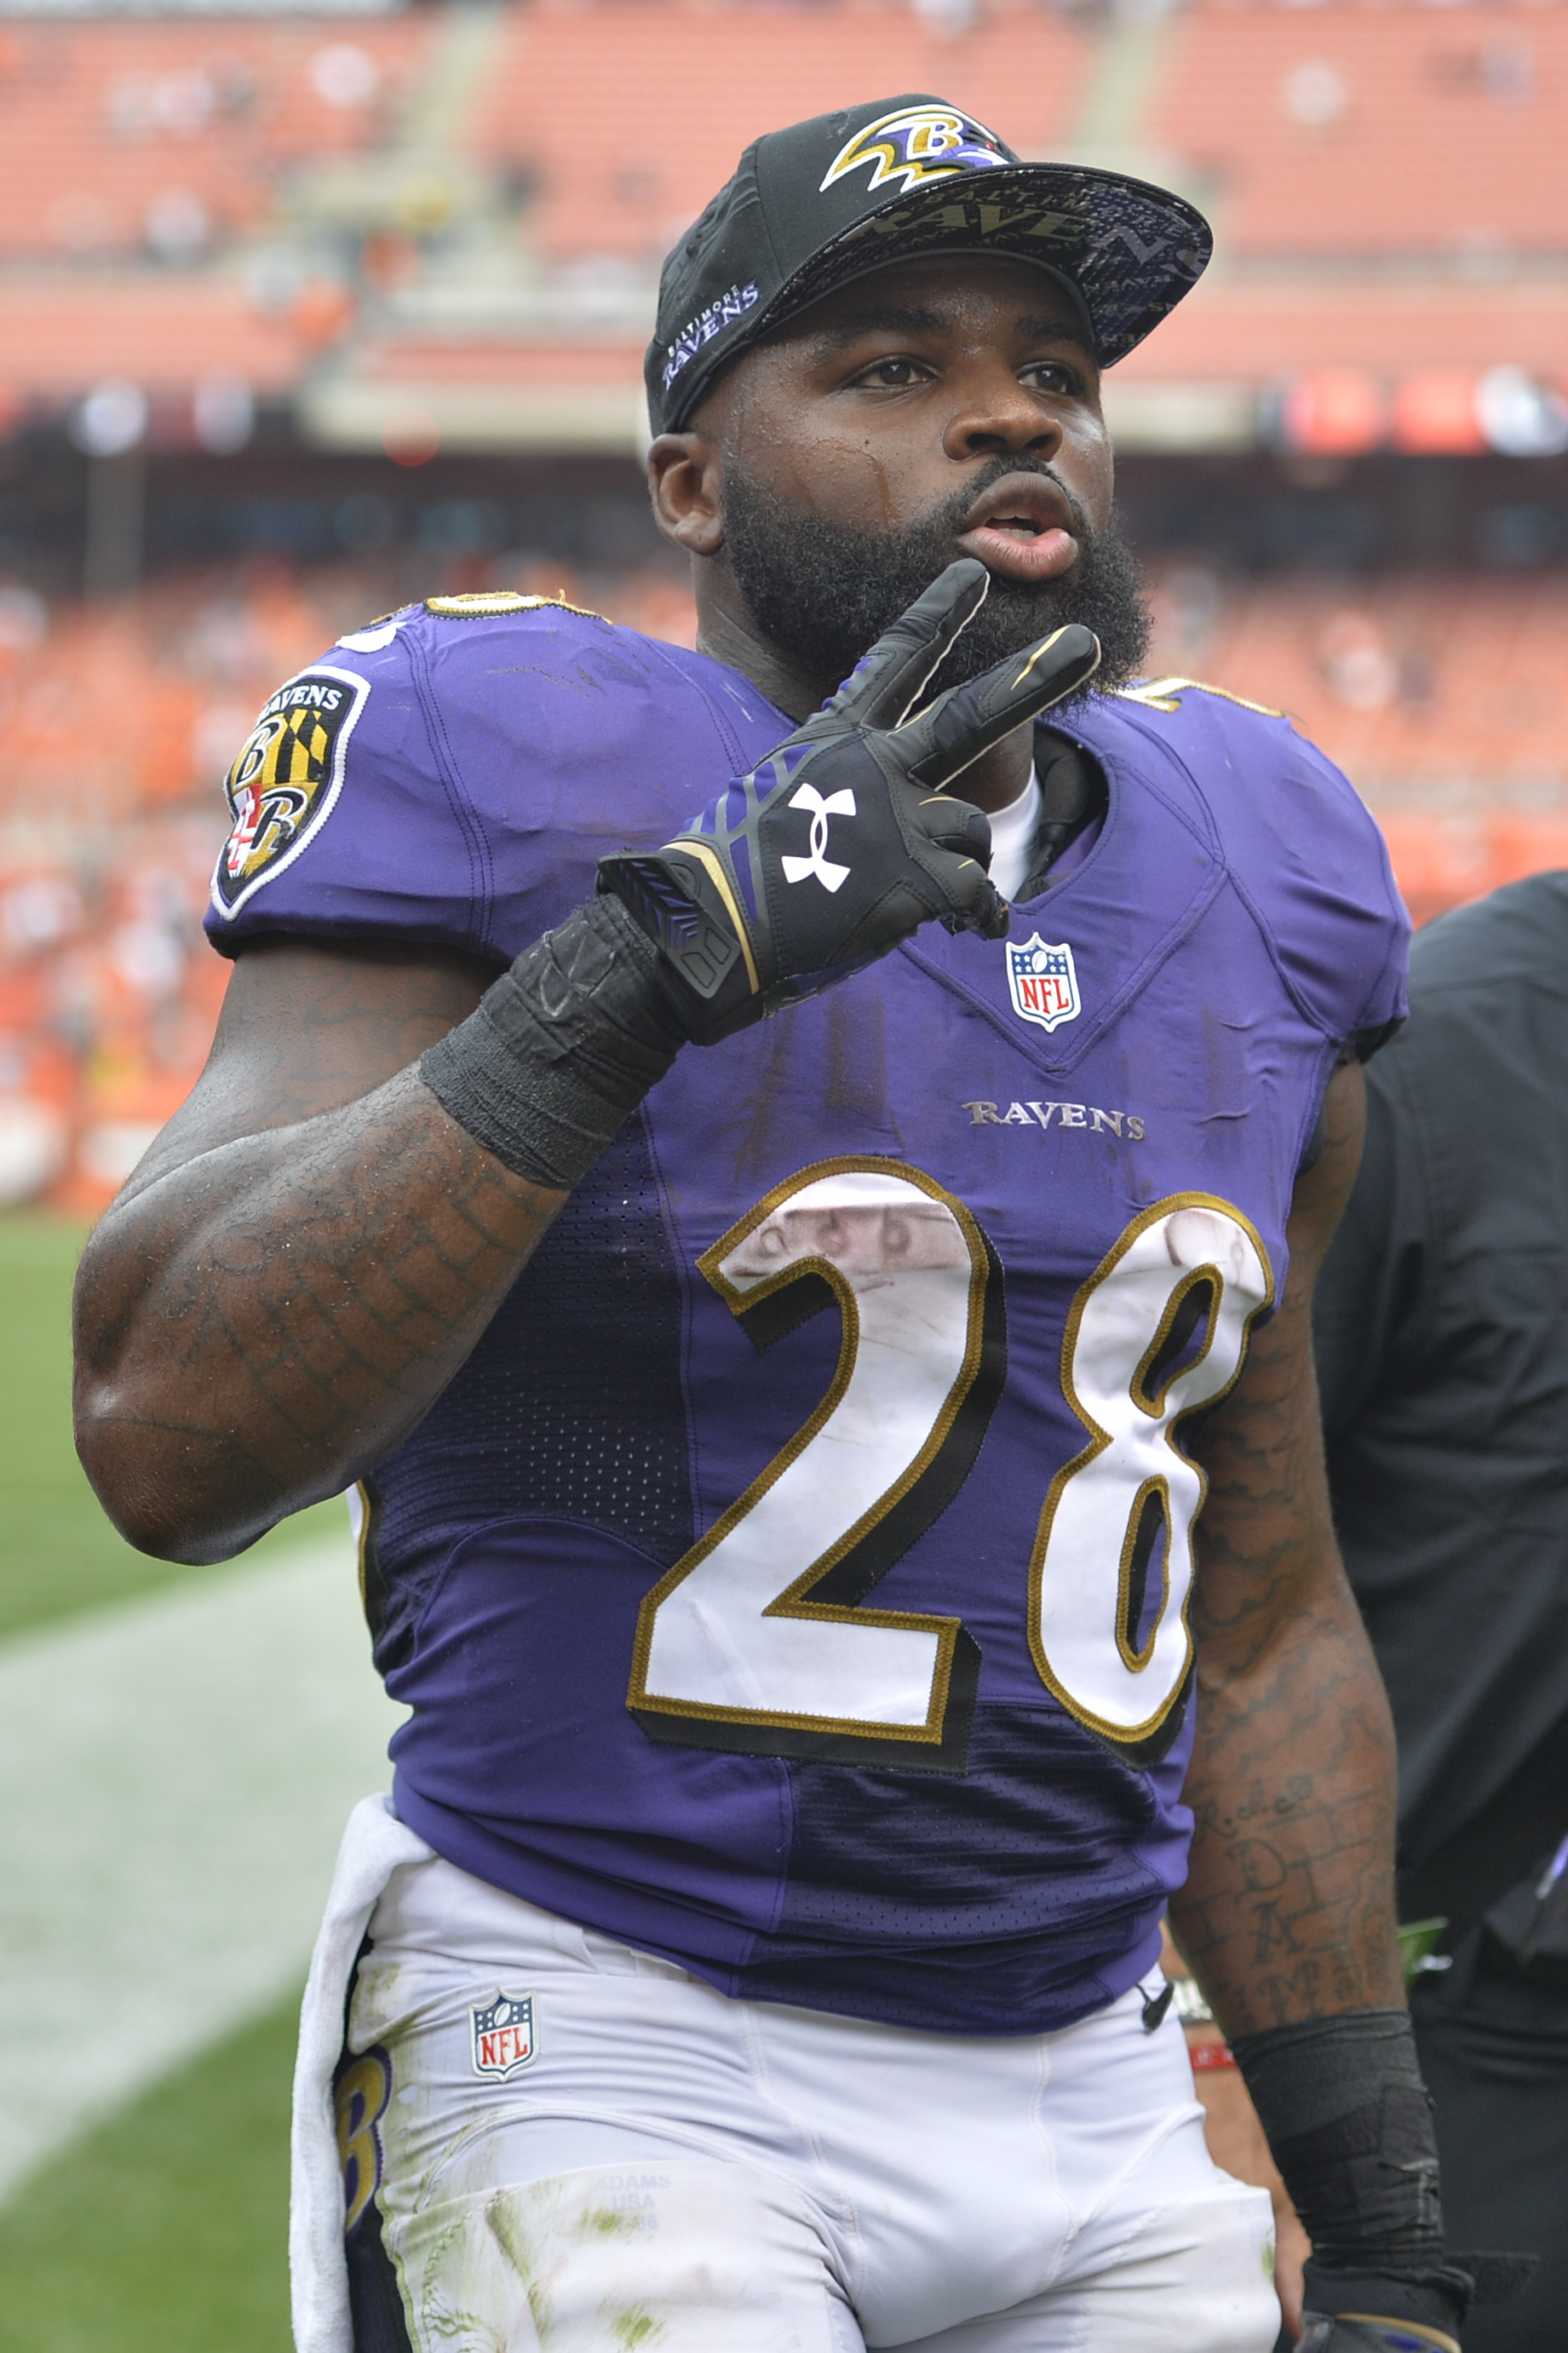 FILE - In this Sept. 18, 2016, file photo, Baltimore Ravens running back Terrance West walks off the field after a 25-20 win over the Cleveland Browns, in an NFL football game in Cleveland. West wanted the brunt of the workload carrying the ball for the B